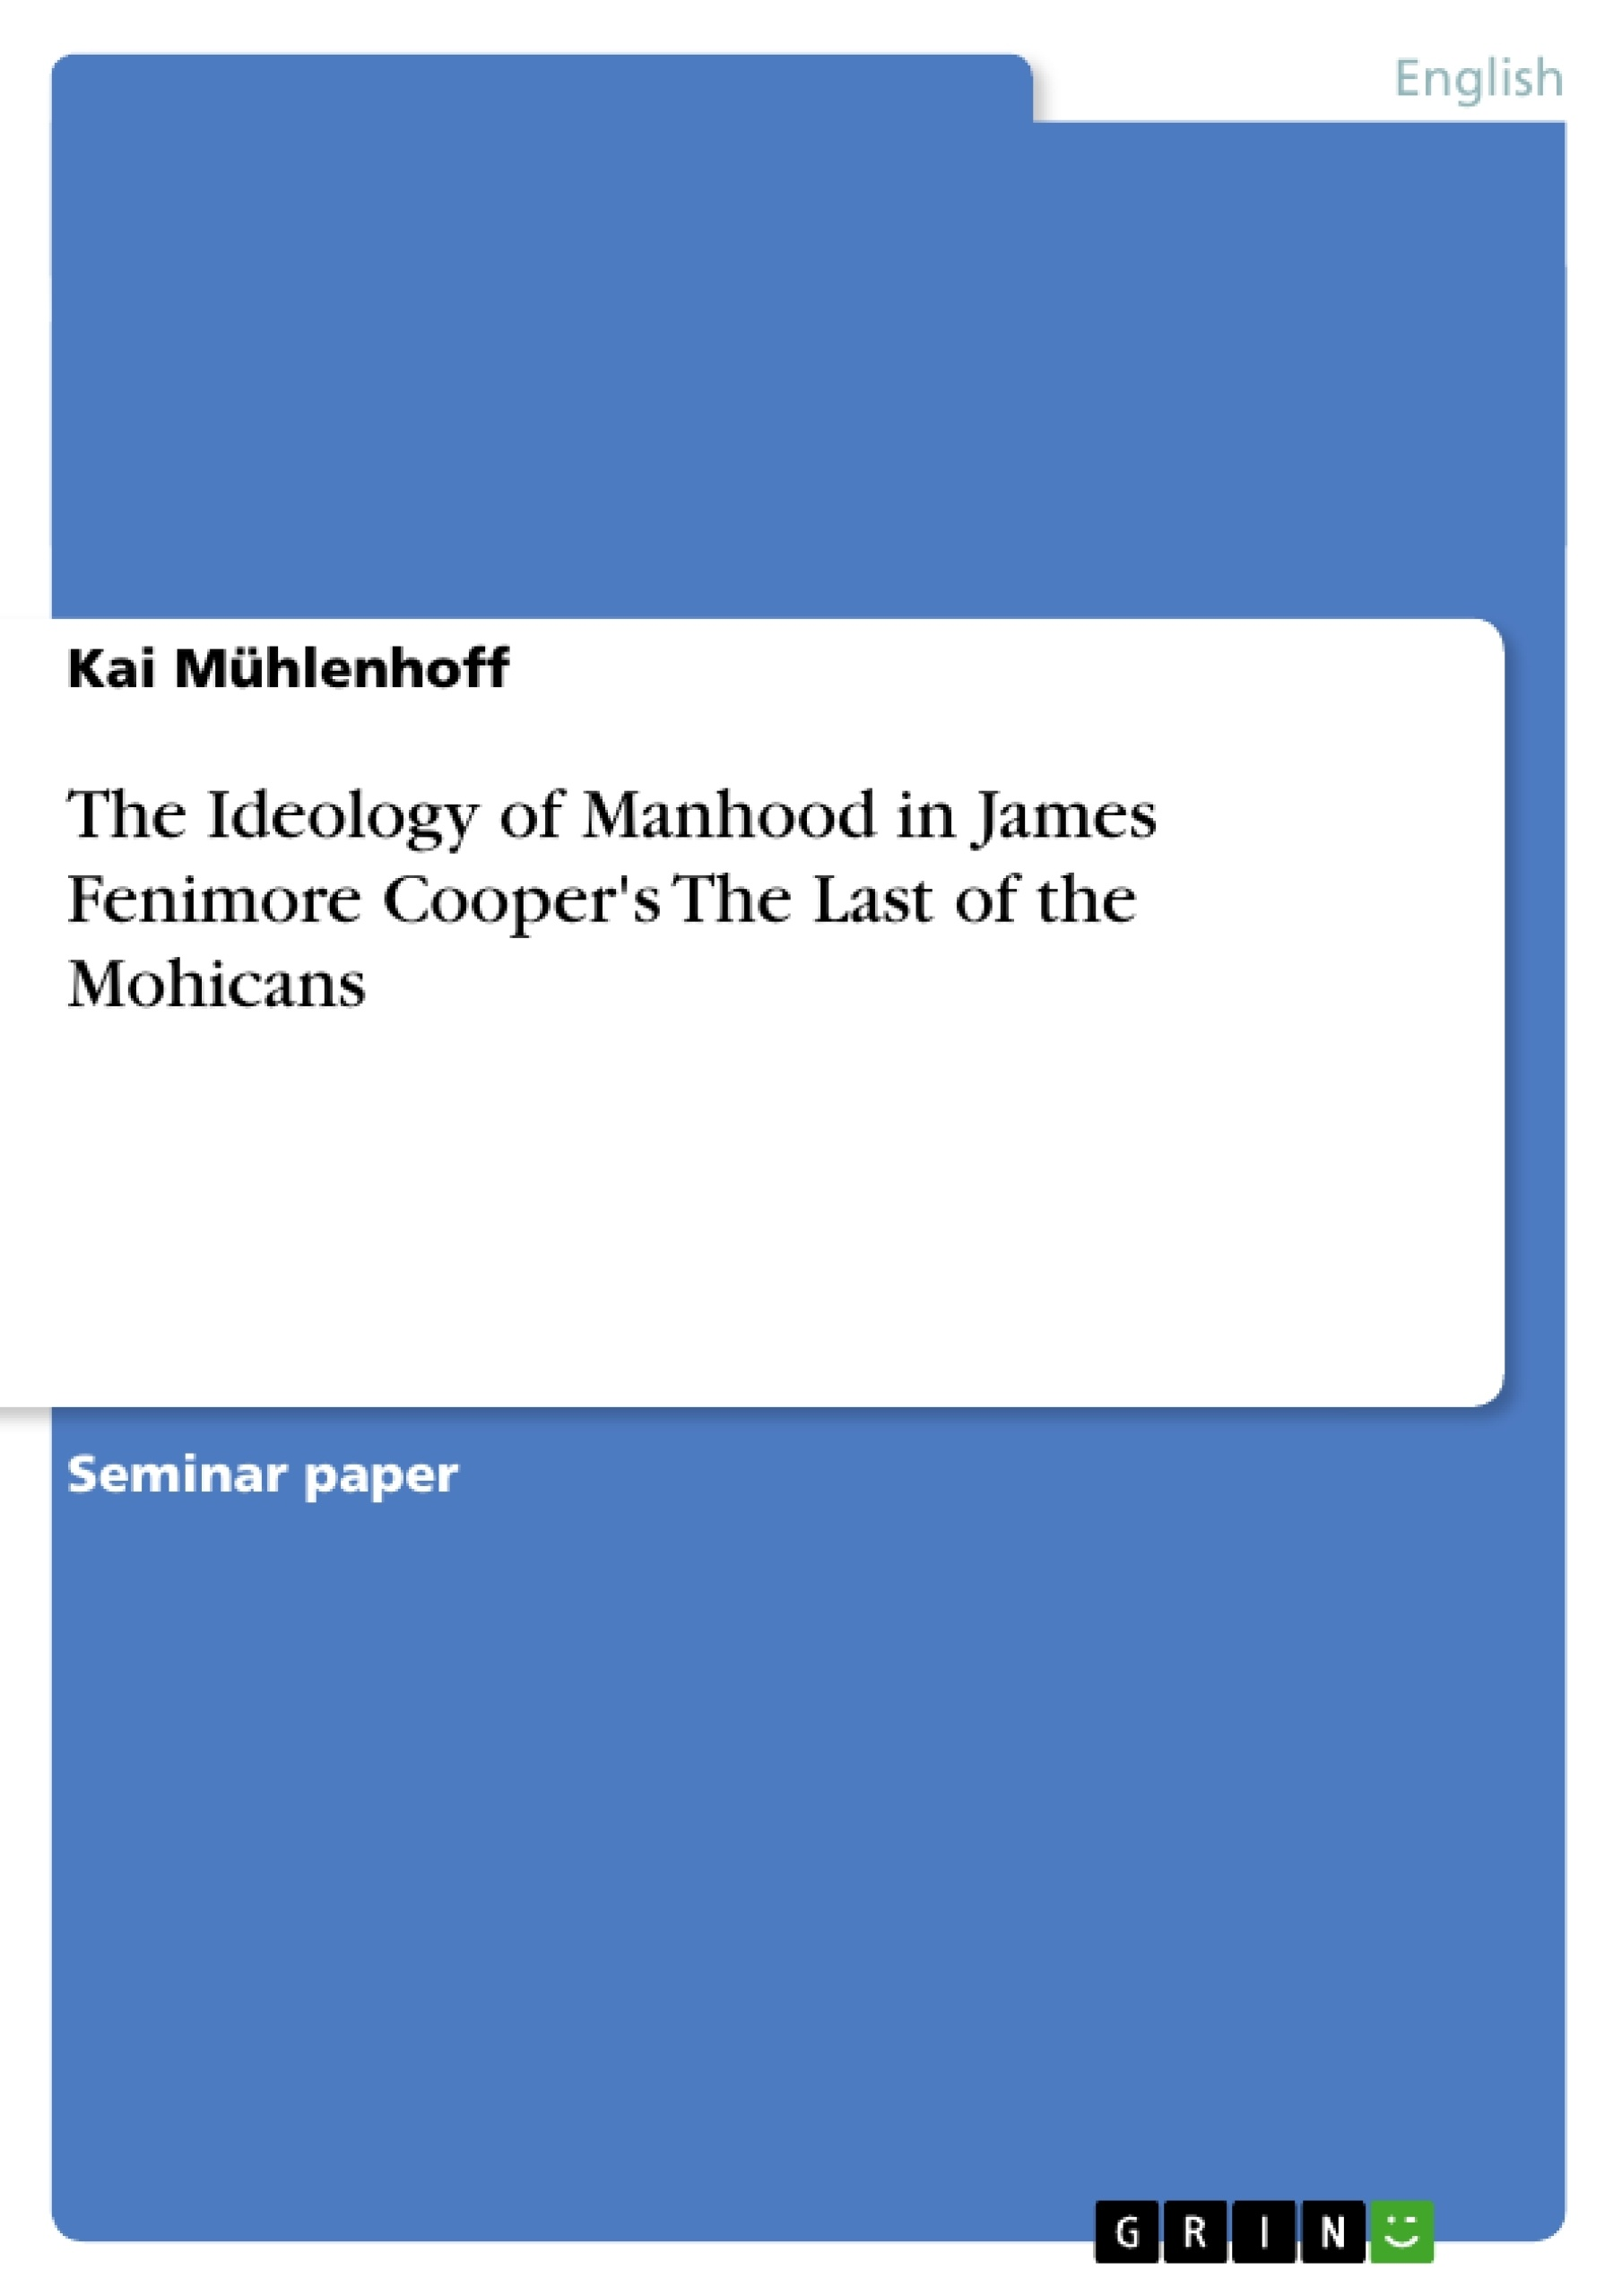 Title: The Ideology of Manhood in James Fenimore Cooper's The Last of the Mohicans